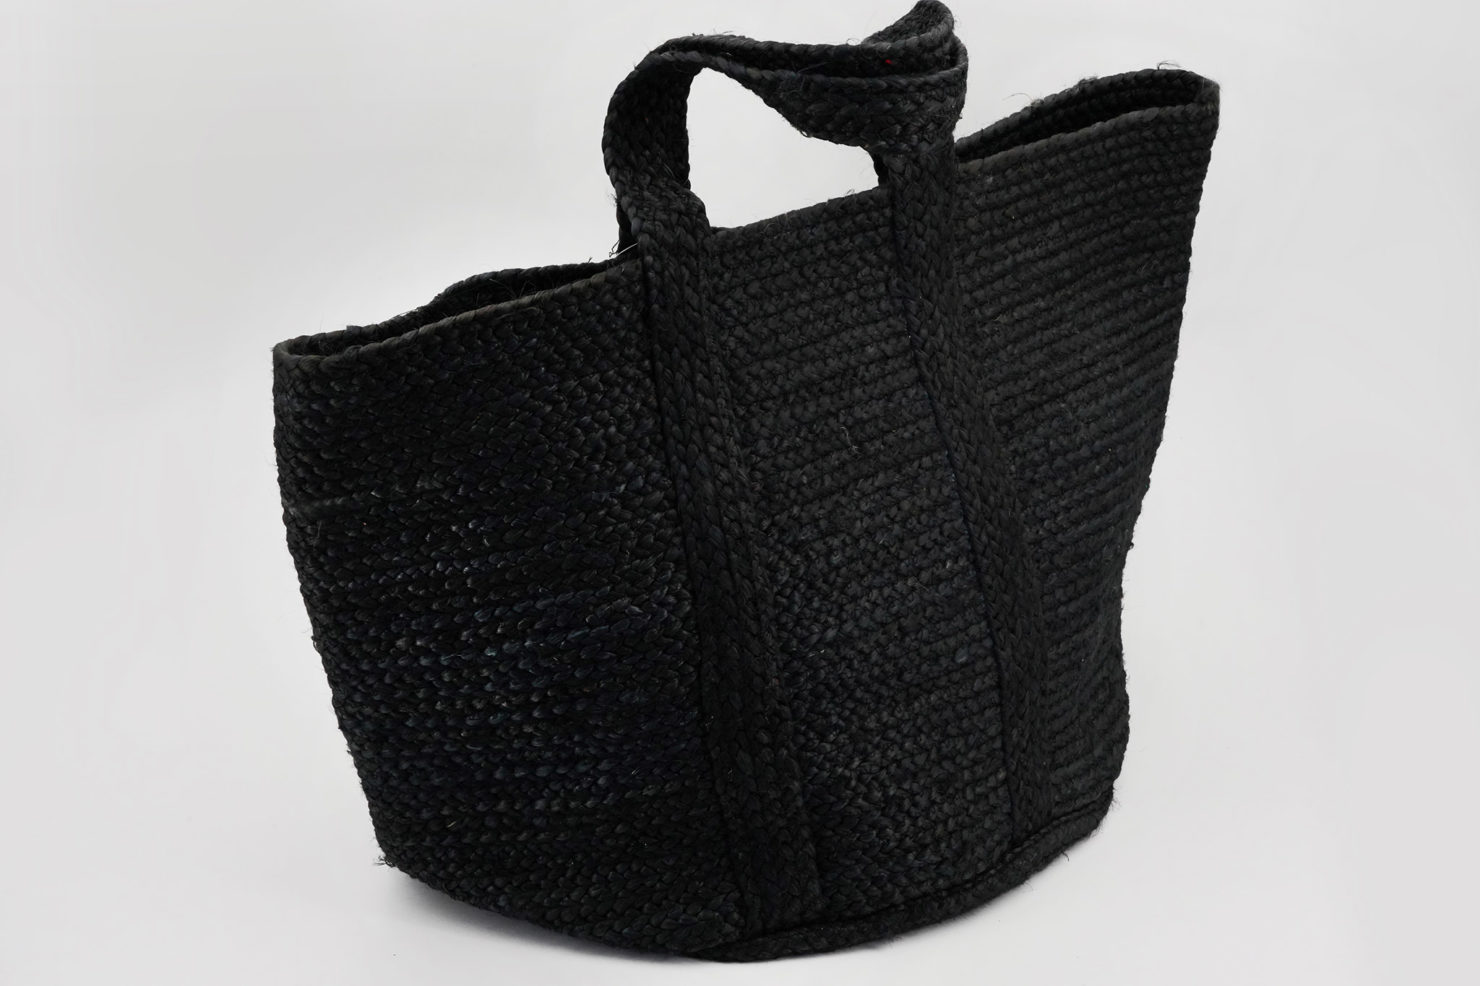 BAG JUTE, BLACK - BY ROOM